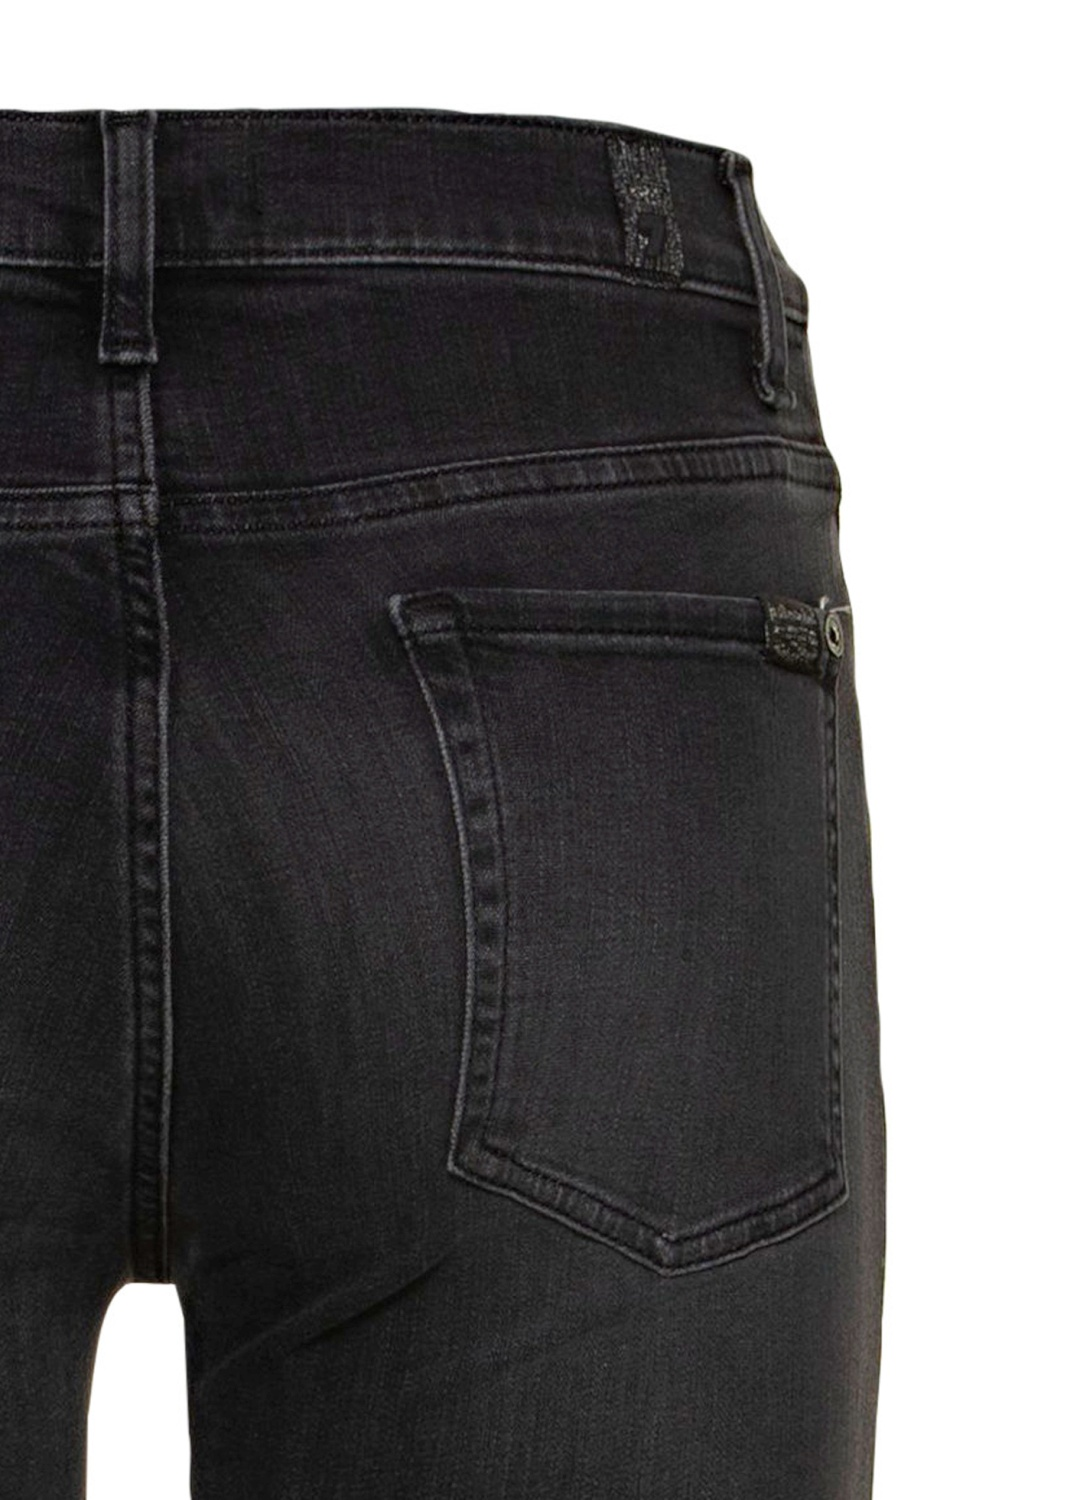 HW SKINNY Slim Illusion Luxe Mistery image number 3